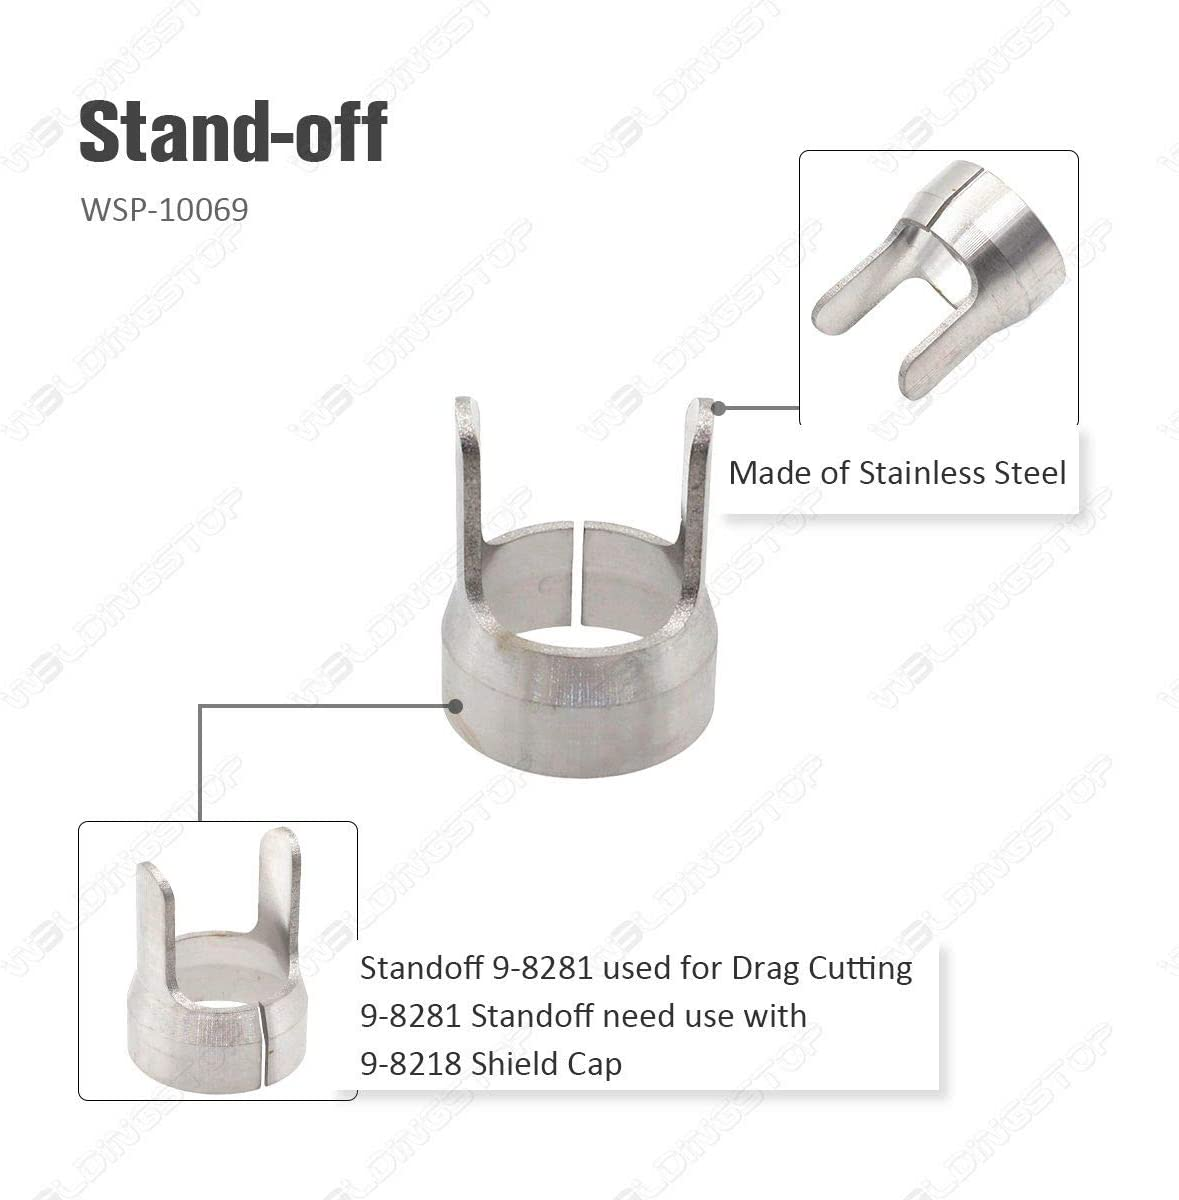 9-8281 Standoff Guide suit Thermal Dynamics SL60 SL100 Plasma Cutting Torch 1pc